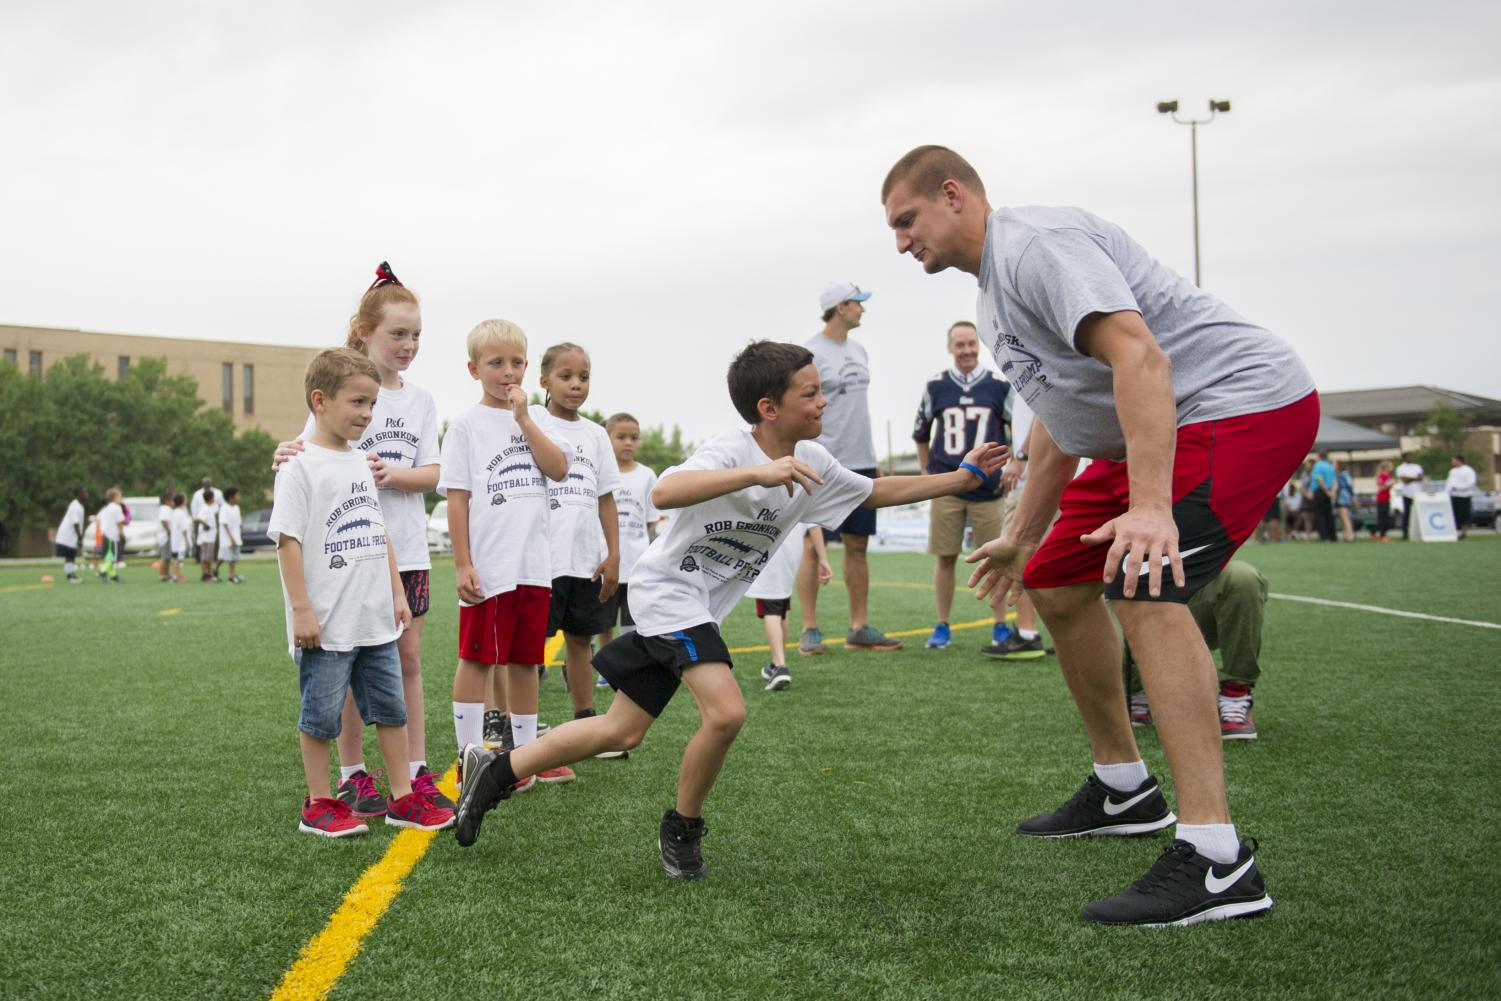 In addition to being a star player for the Patriots, tight end Rob Gronkowski gave back to his community. Gronkowski ran football drills for about 100 military children at a ProCamps event on Joint Base Andrews, Md., July 2, 2015.